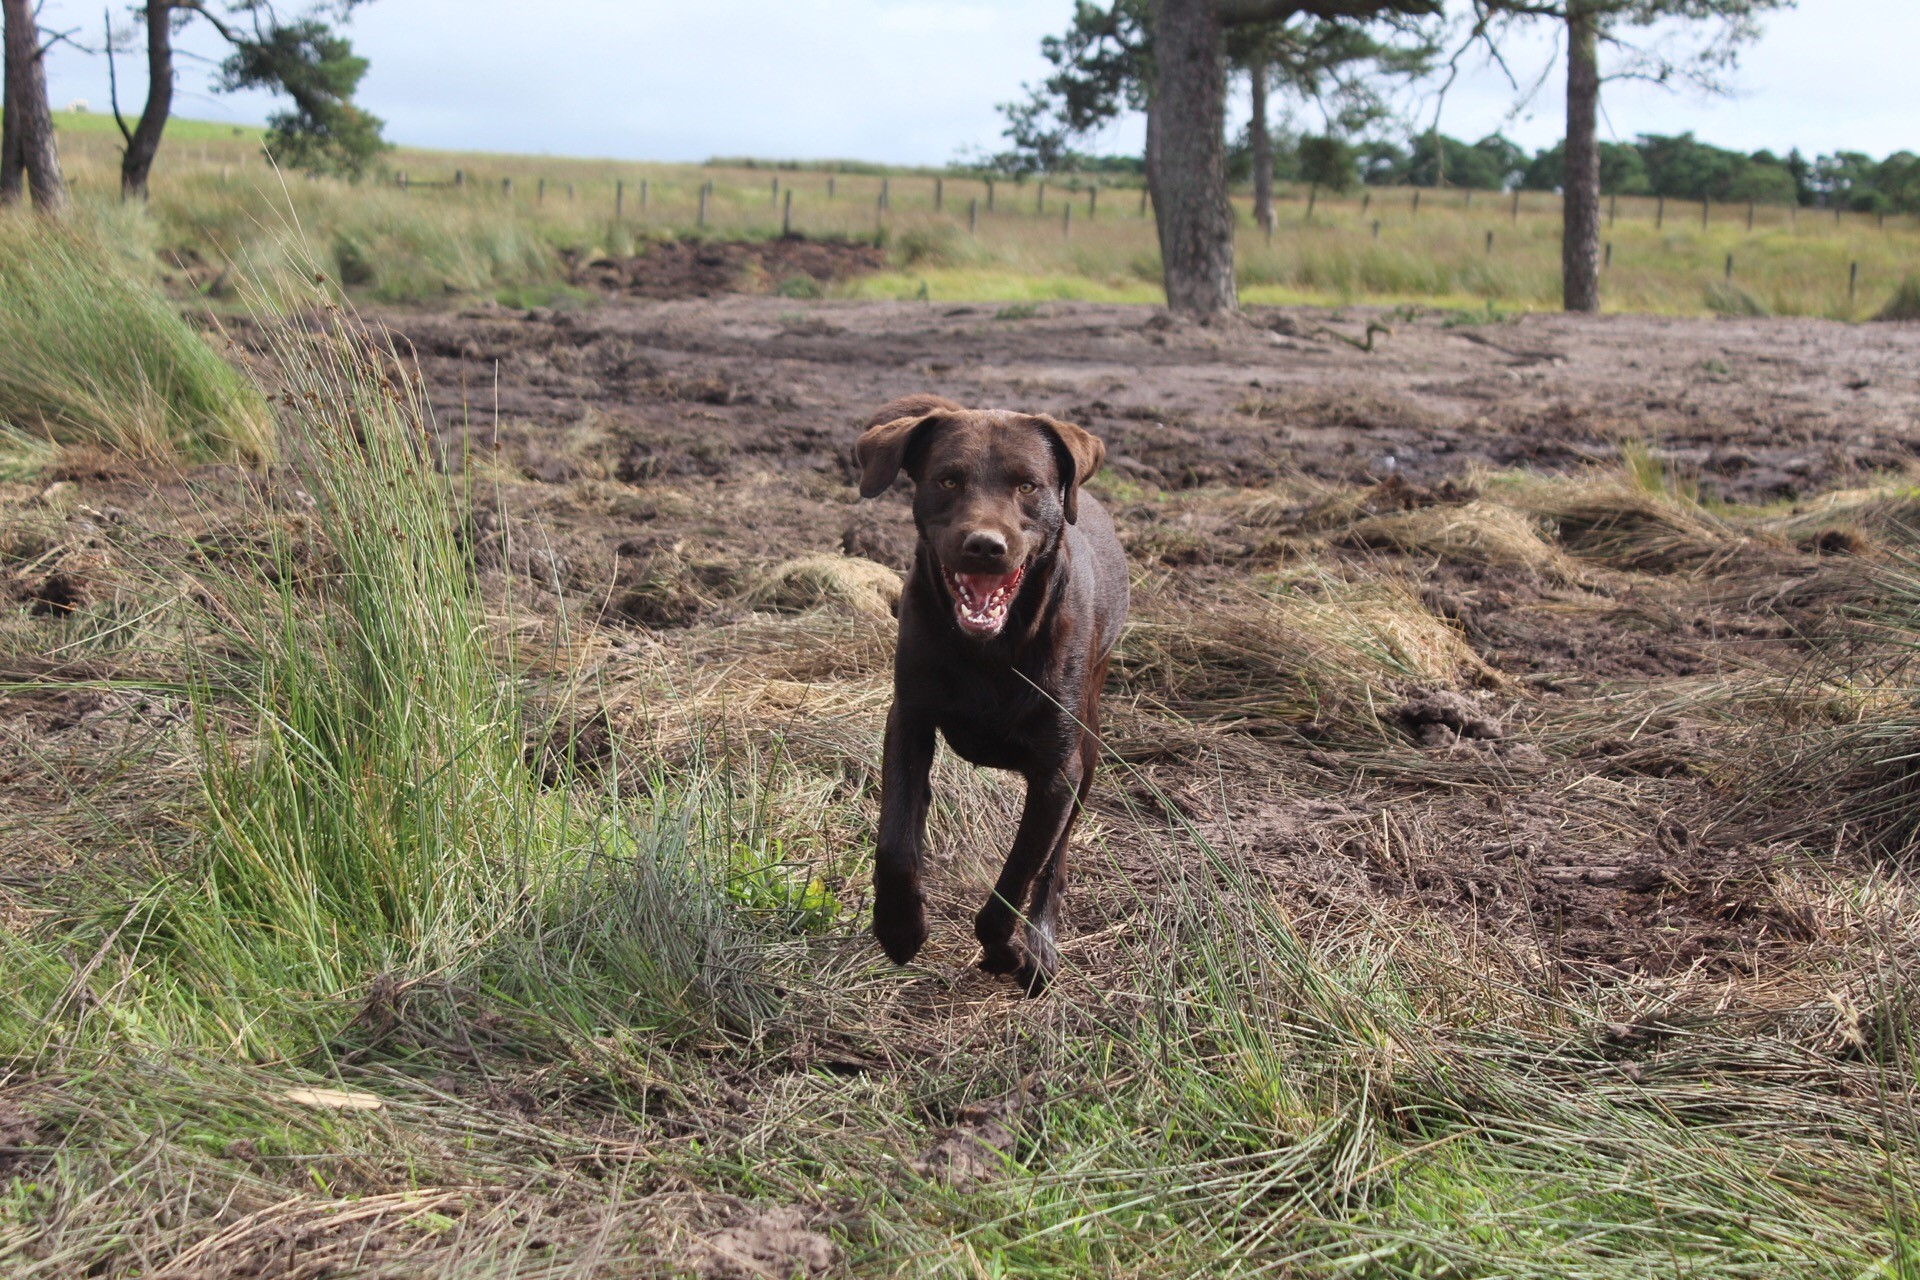 Chocolate Labrador Mid Run Across Scottish Fields